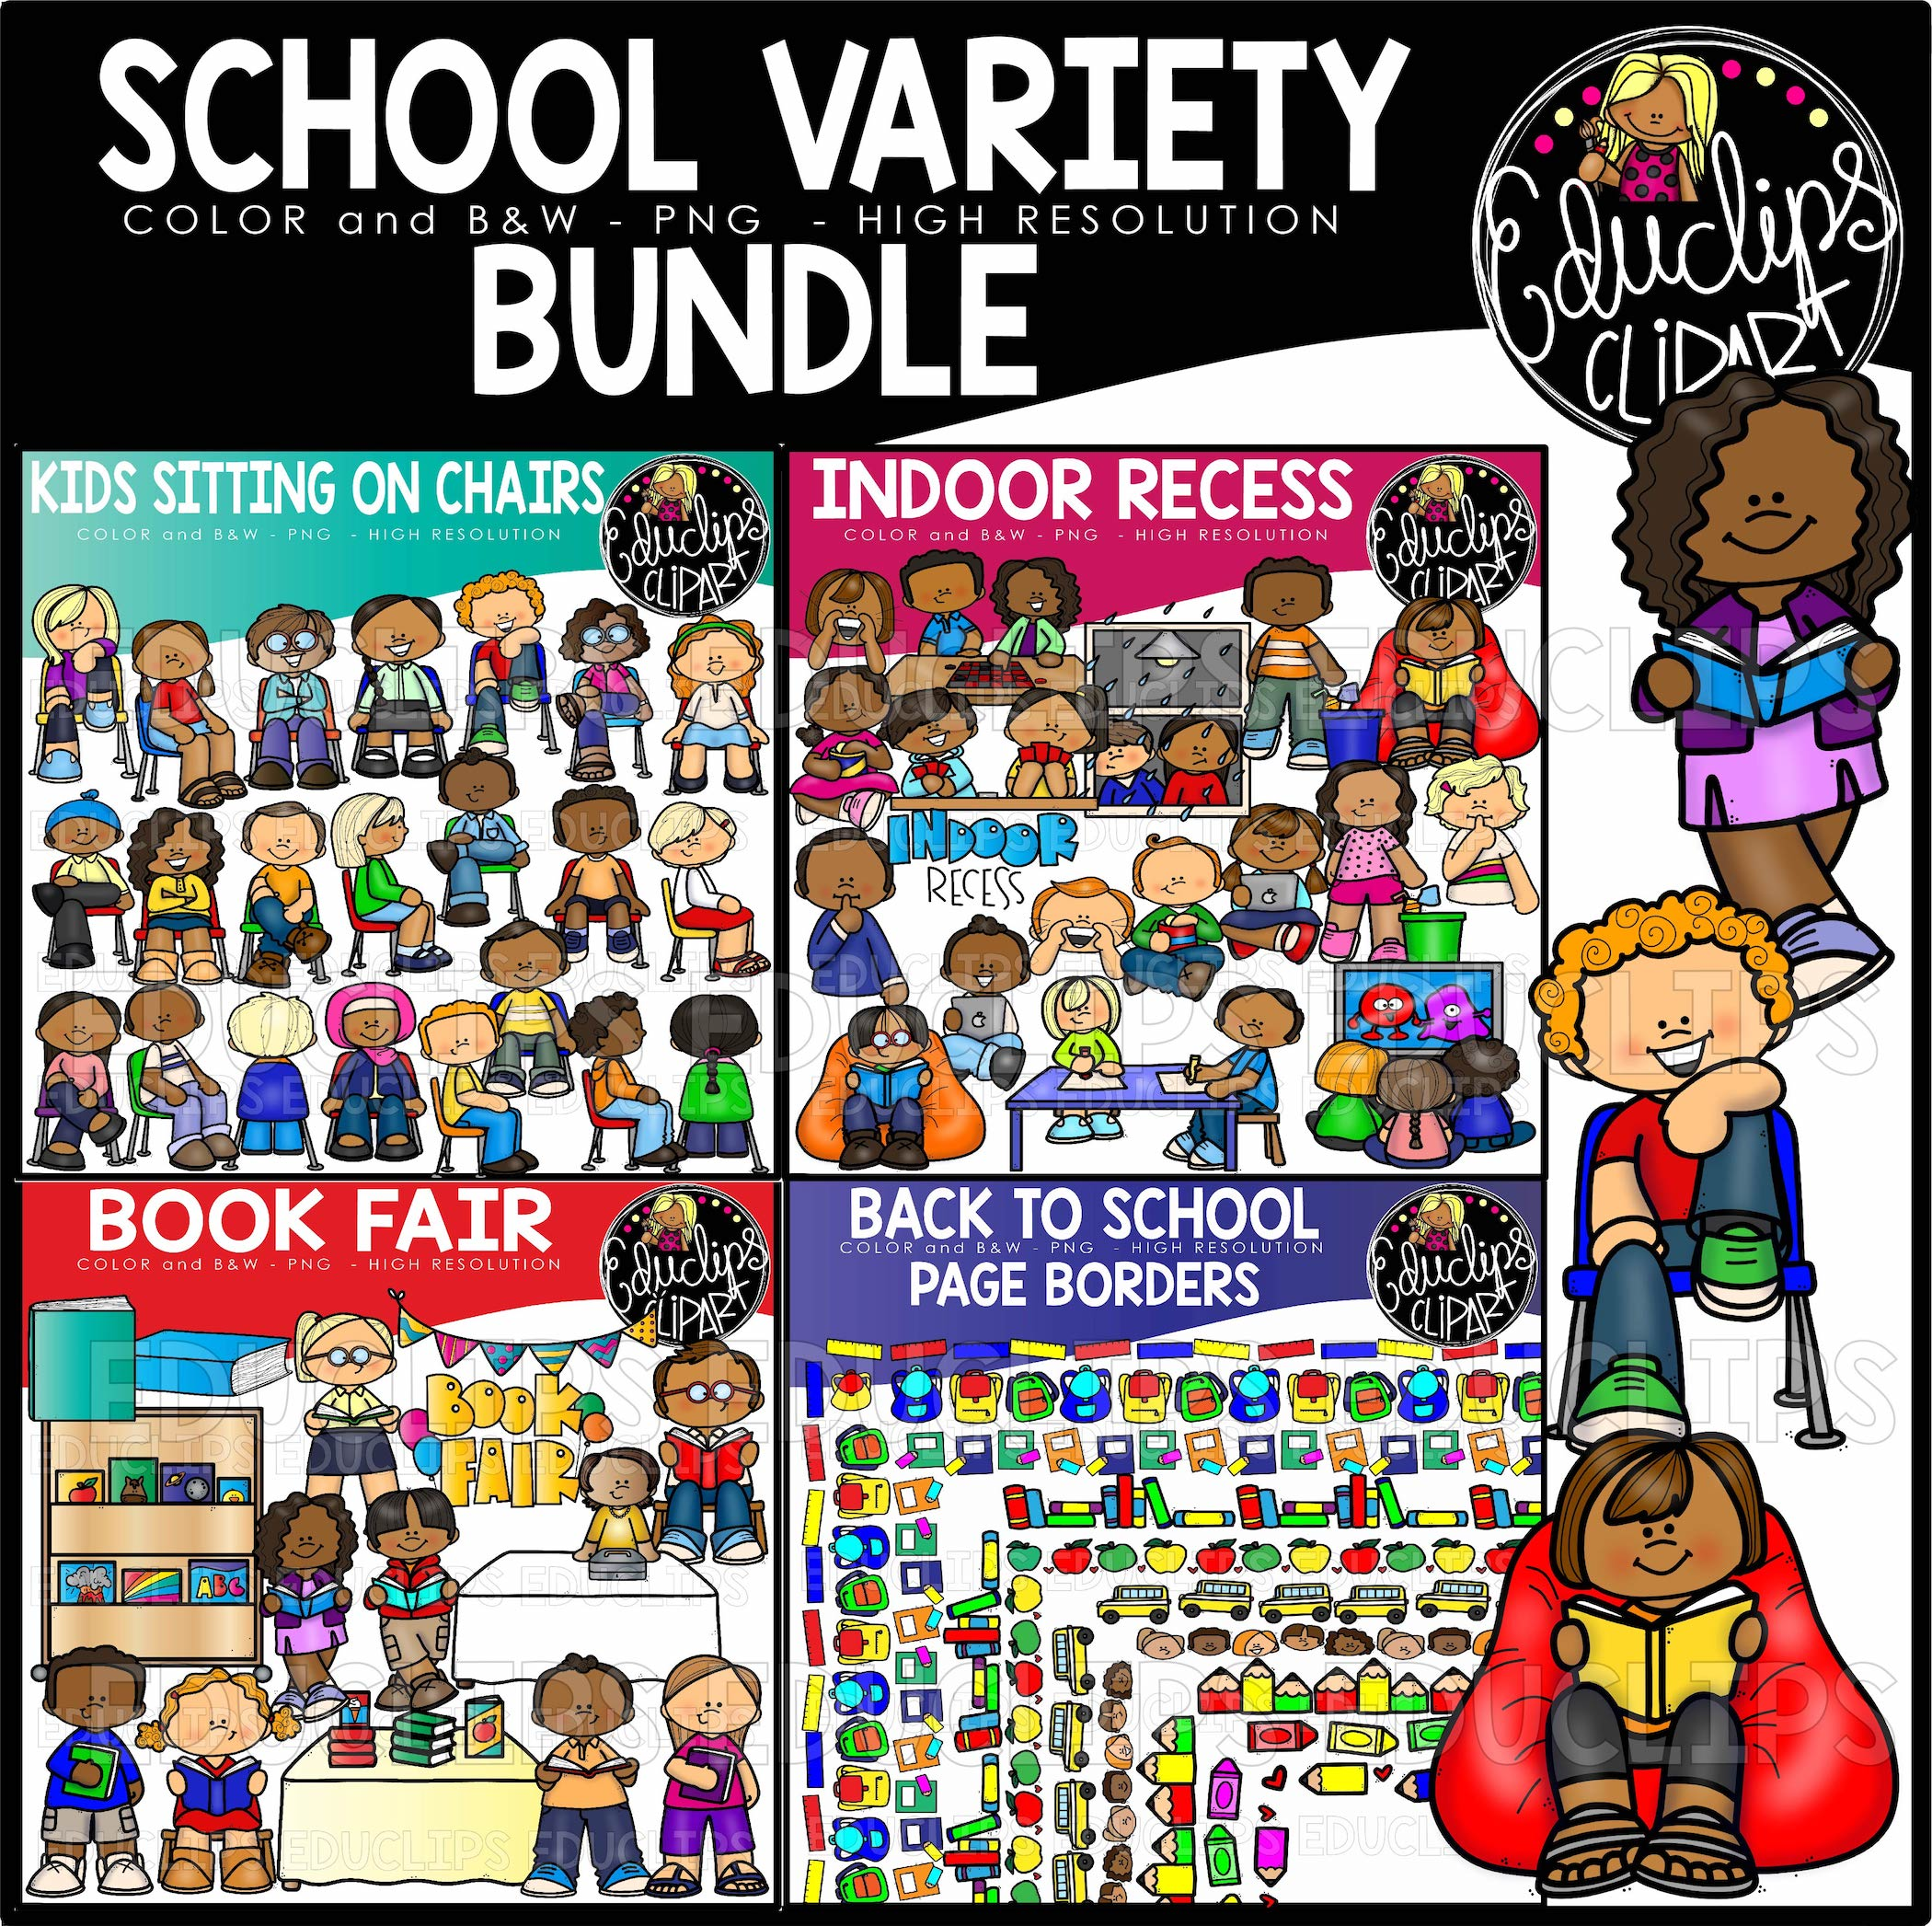 80 s day book fair clipart graphic library School Variety Clip Art Bundle graphic library